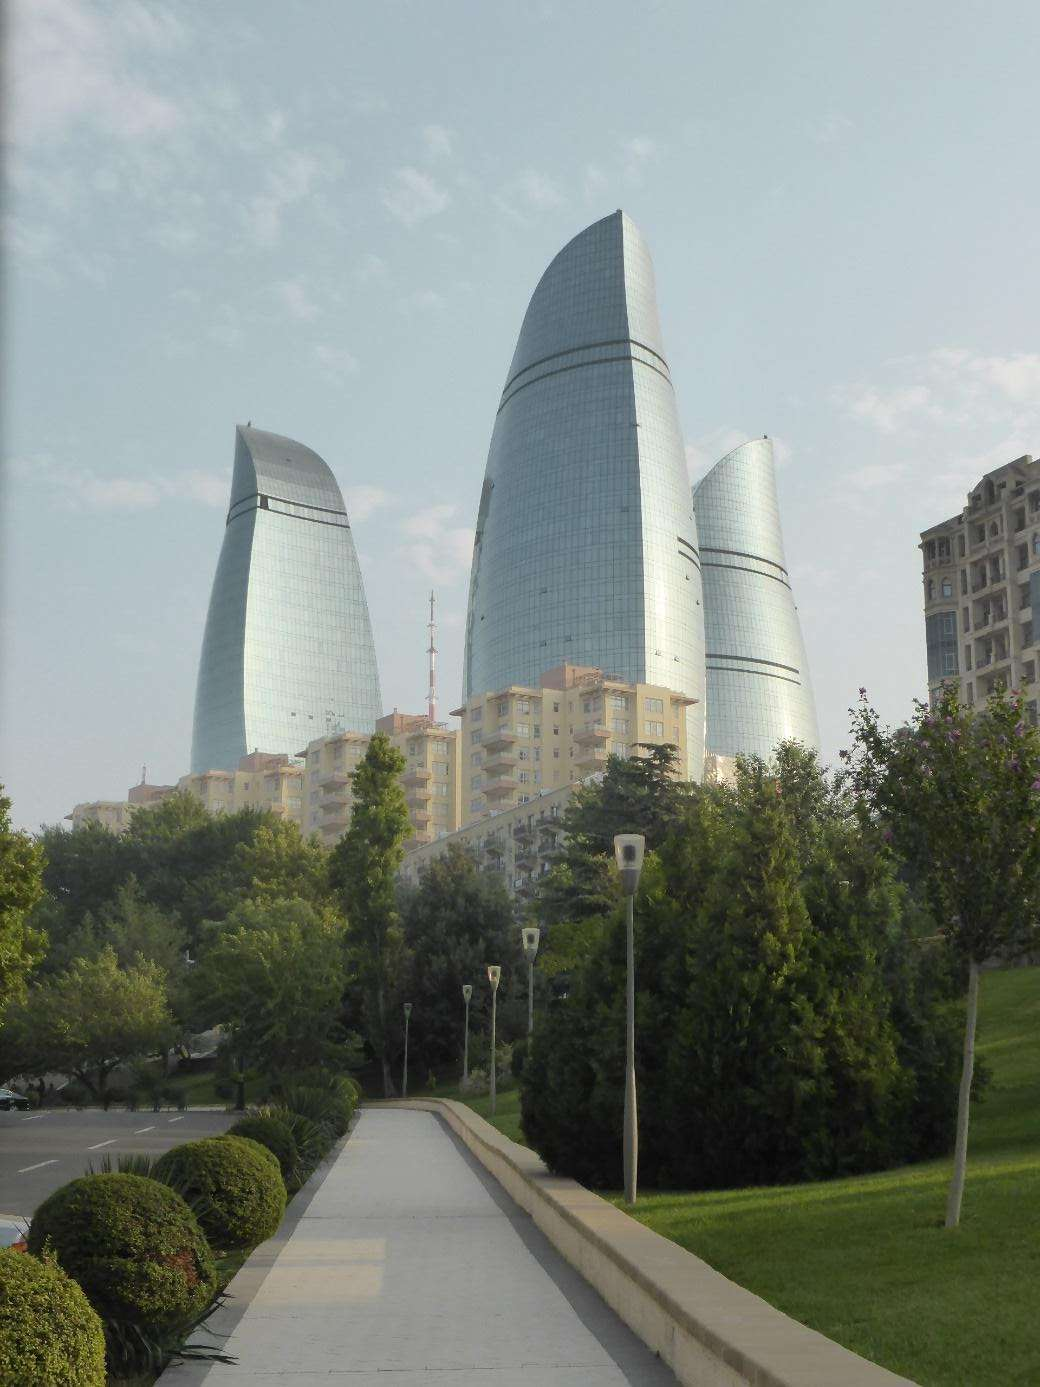 Azerbeidzjan, Baku, Flame Towers